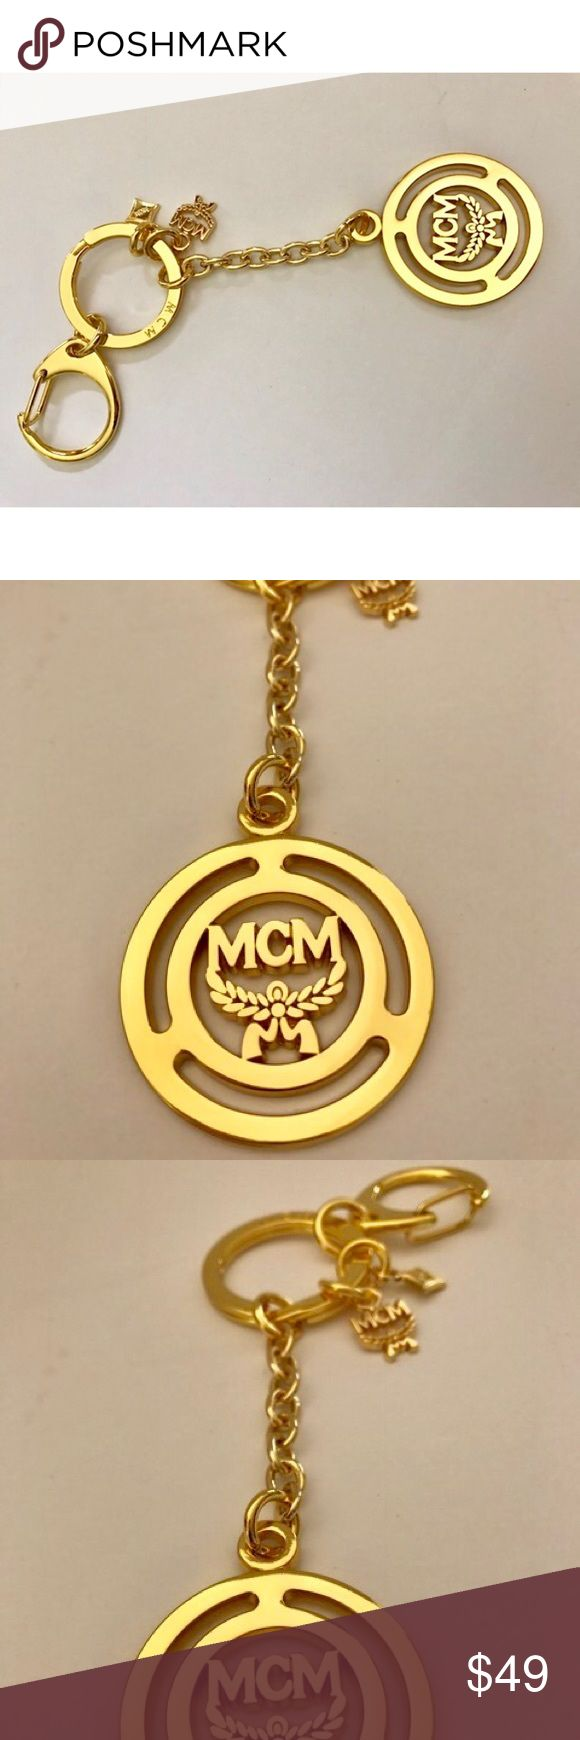 MCM logo keychain / key charm Gorgeous mcm logo keychain. Perfect for your MCM handbags. MCM Accessories